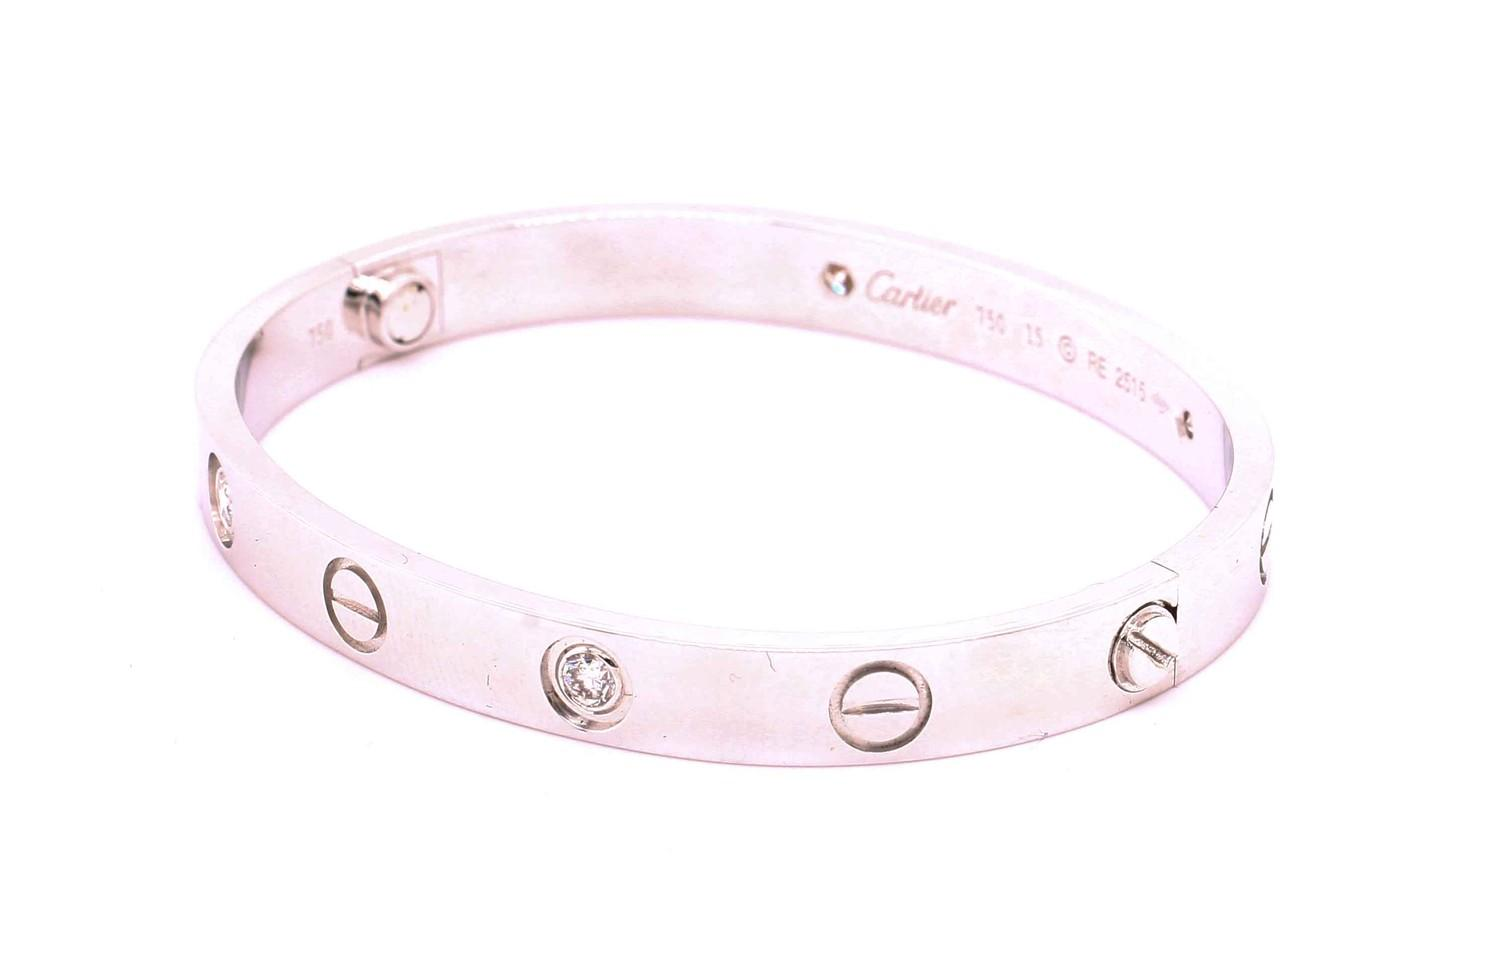 An authentic 18ct white gold 4 diamond Cartier Love bracelet / bangle with original screw, box and - Image 4 of 4